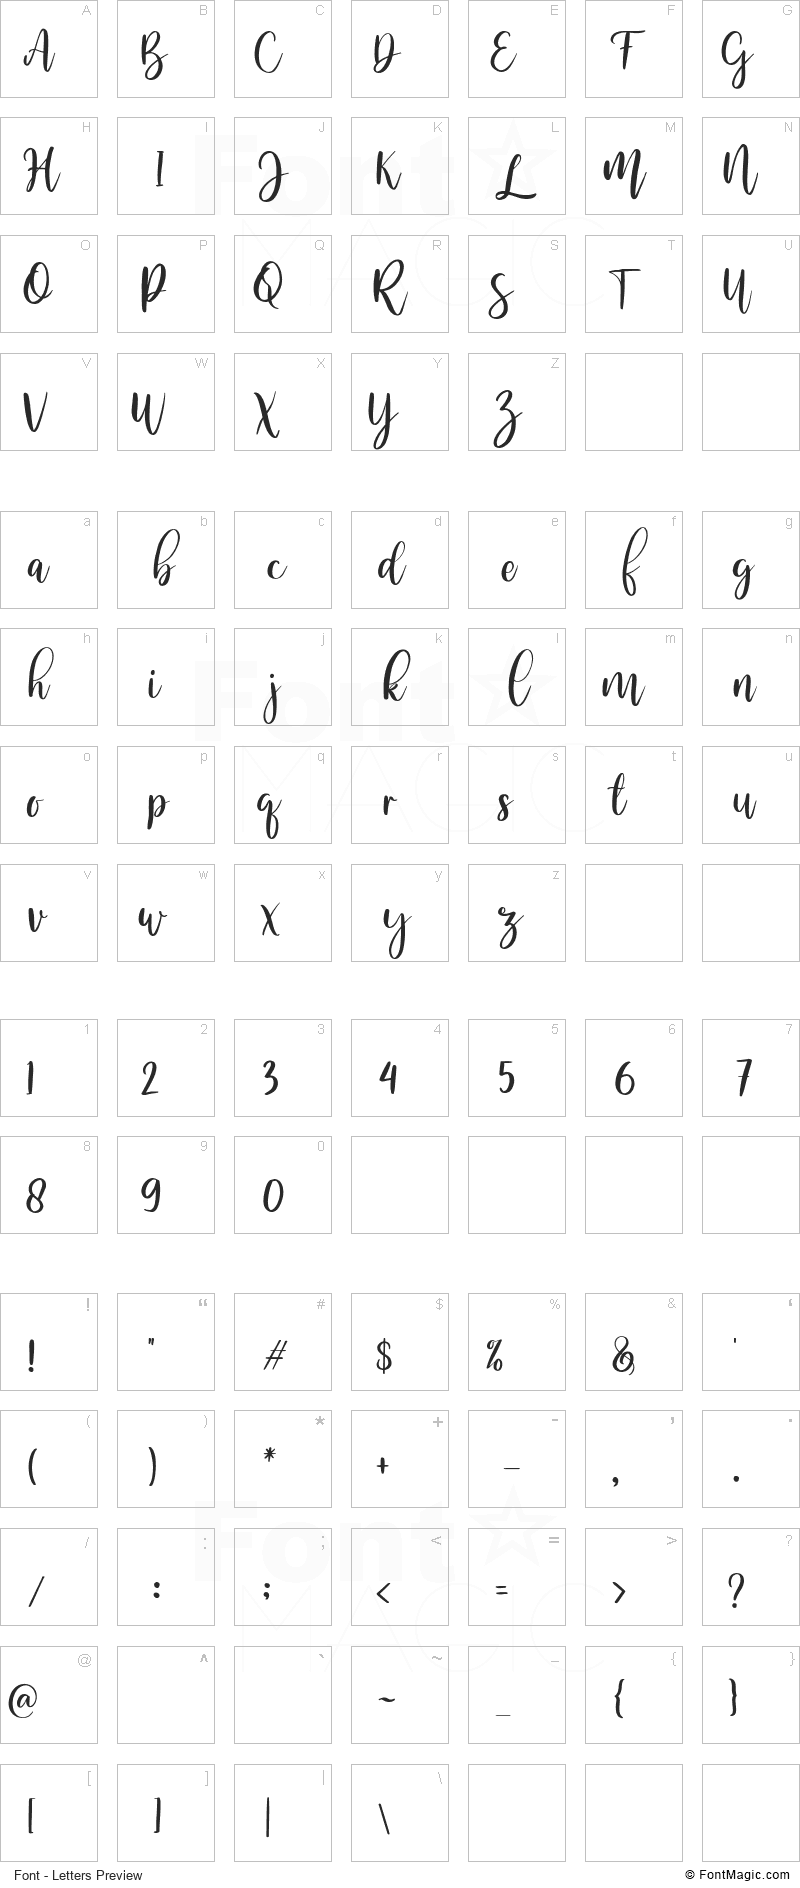 Melloner Font - All Latters Preview Chart